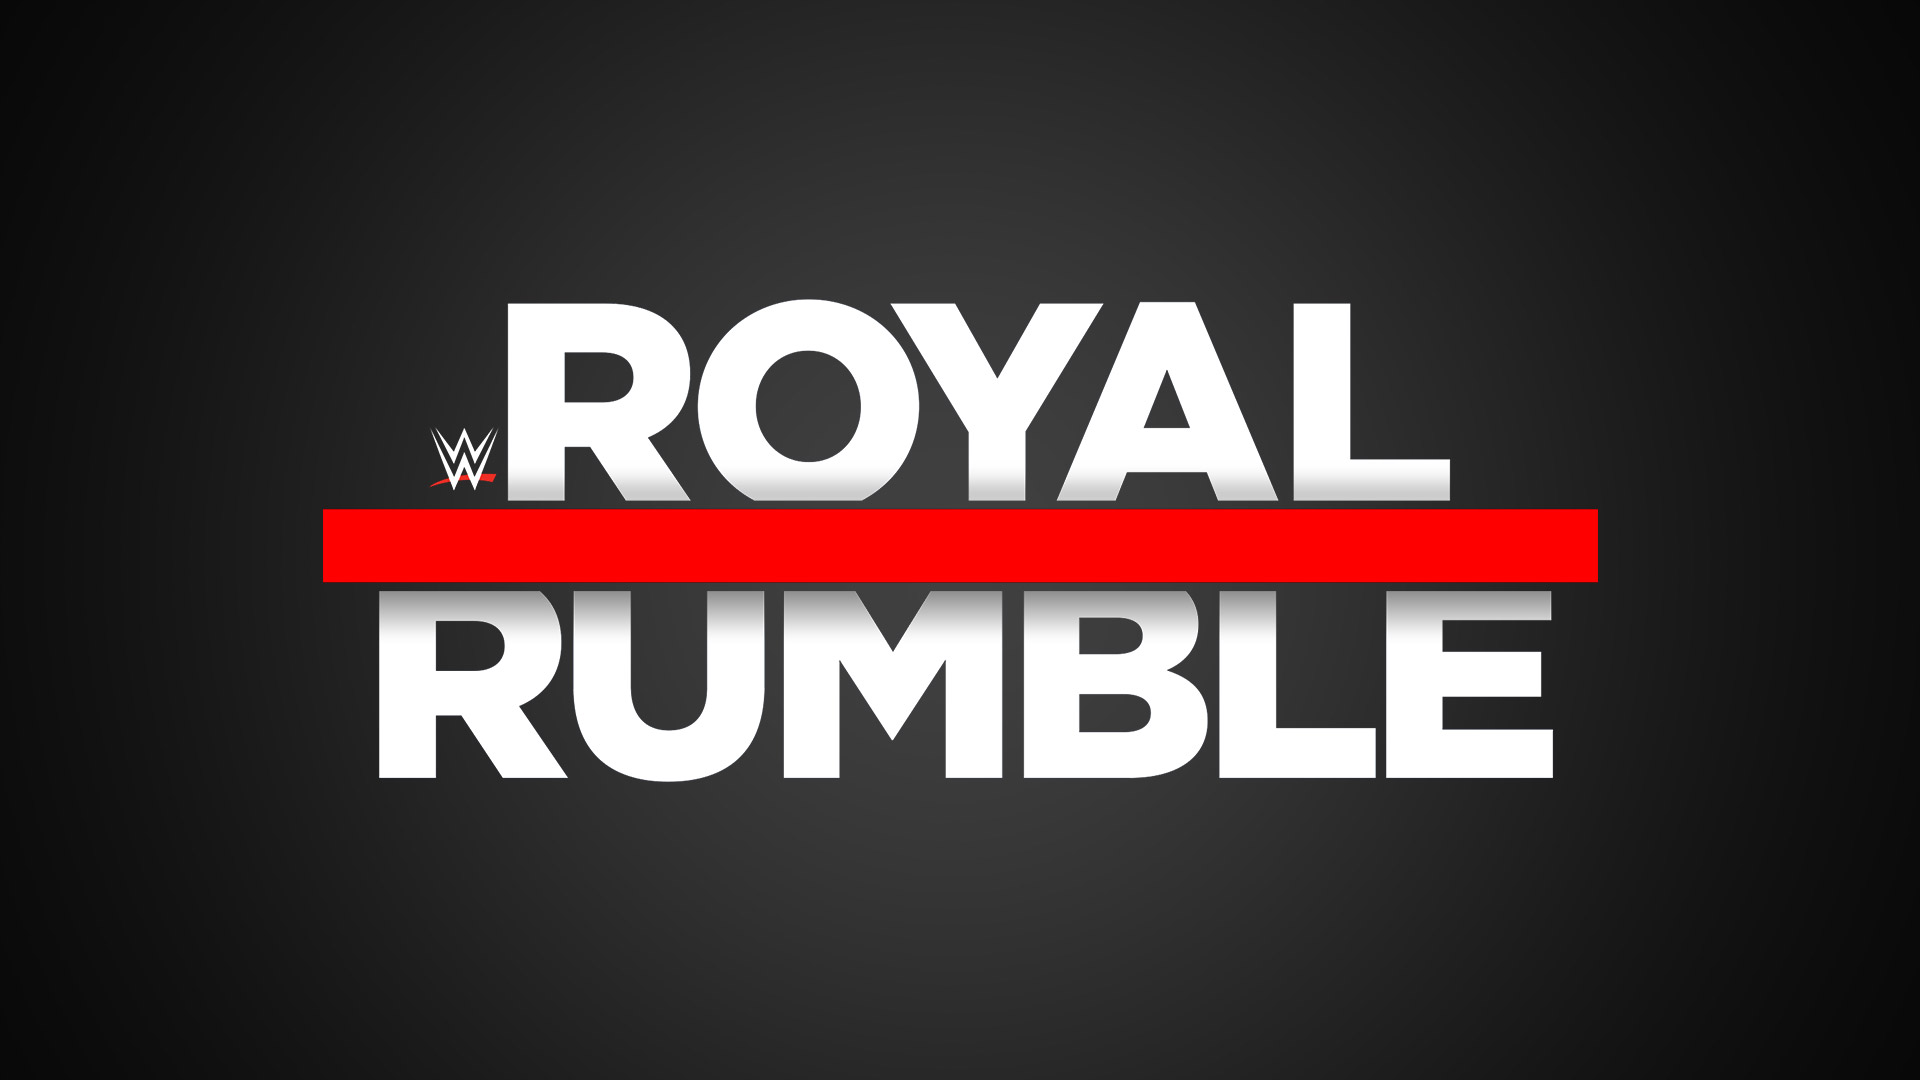 Update On Women's Royal Rumble, Next Year's WWE Tournament